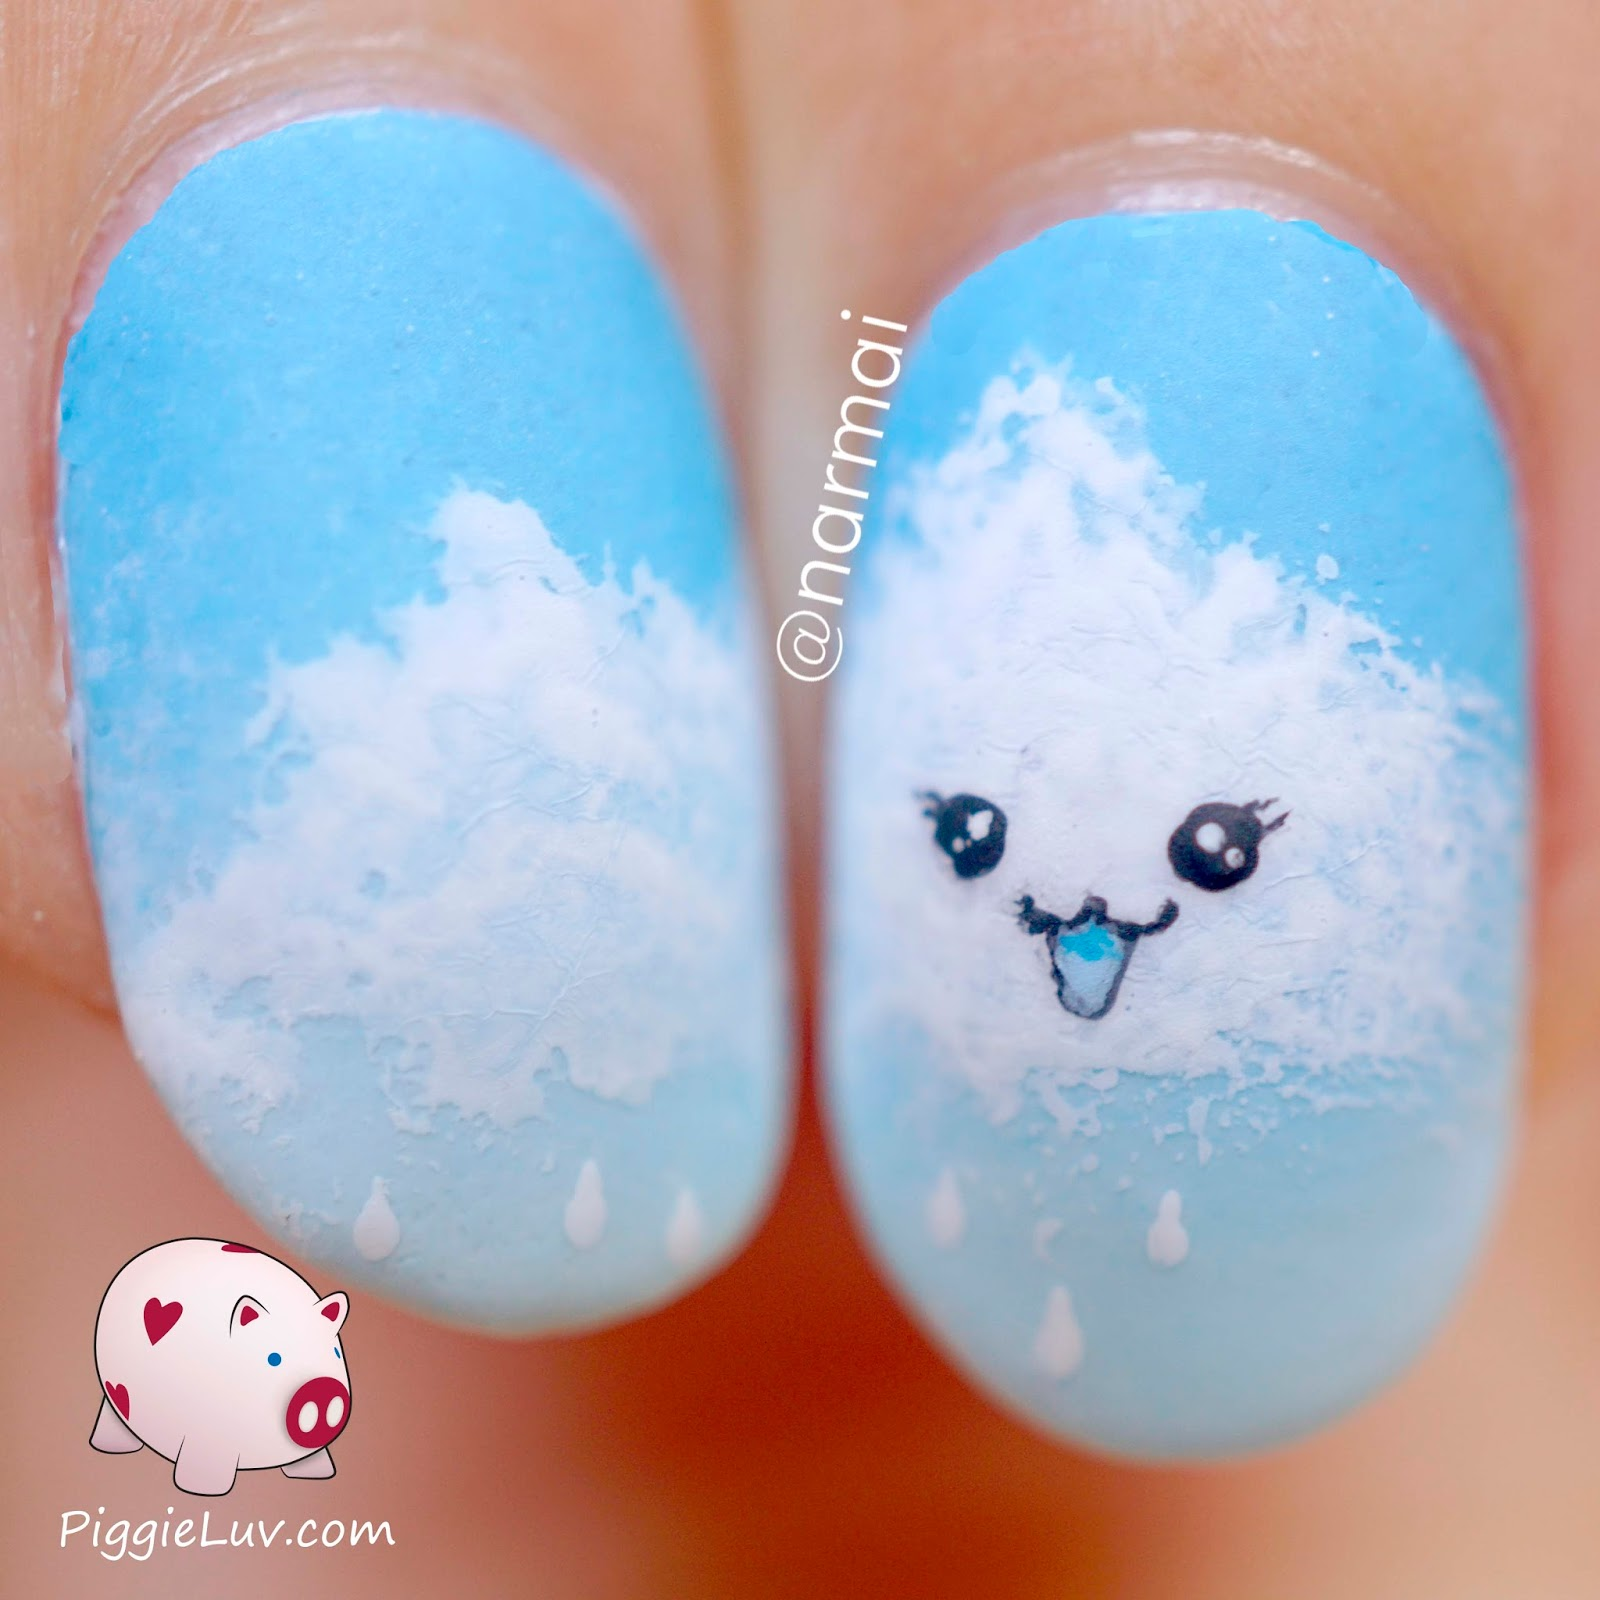 PiggieLuv: Cheeky kawaii cloud nail art